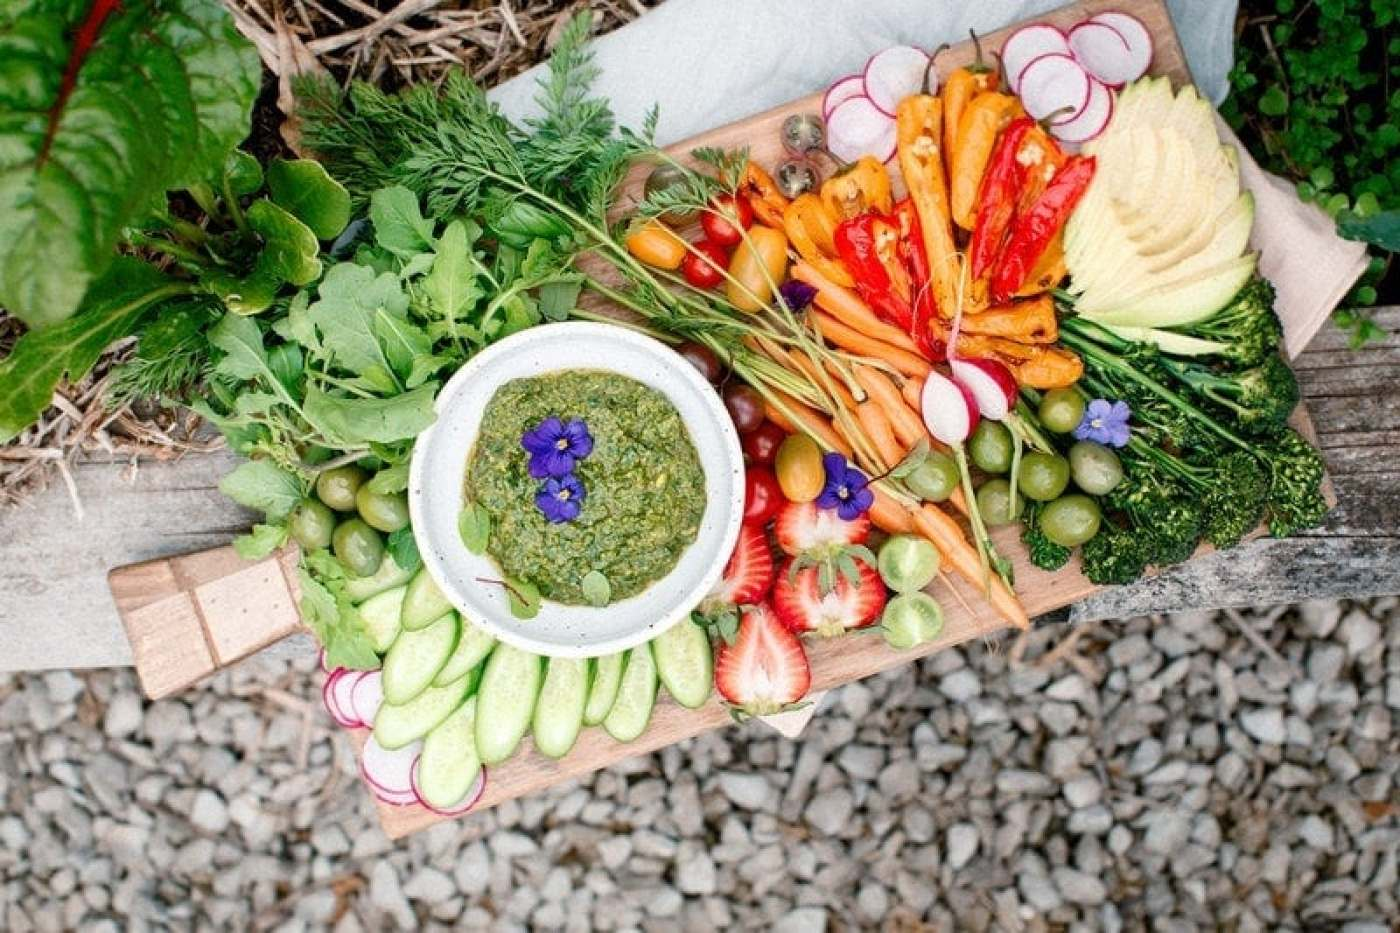 Wide shot of rustic board crammed with fresh vegetables and pesto resting on garden bed